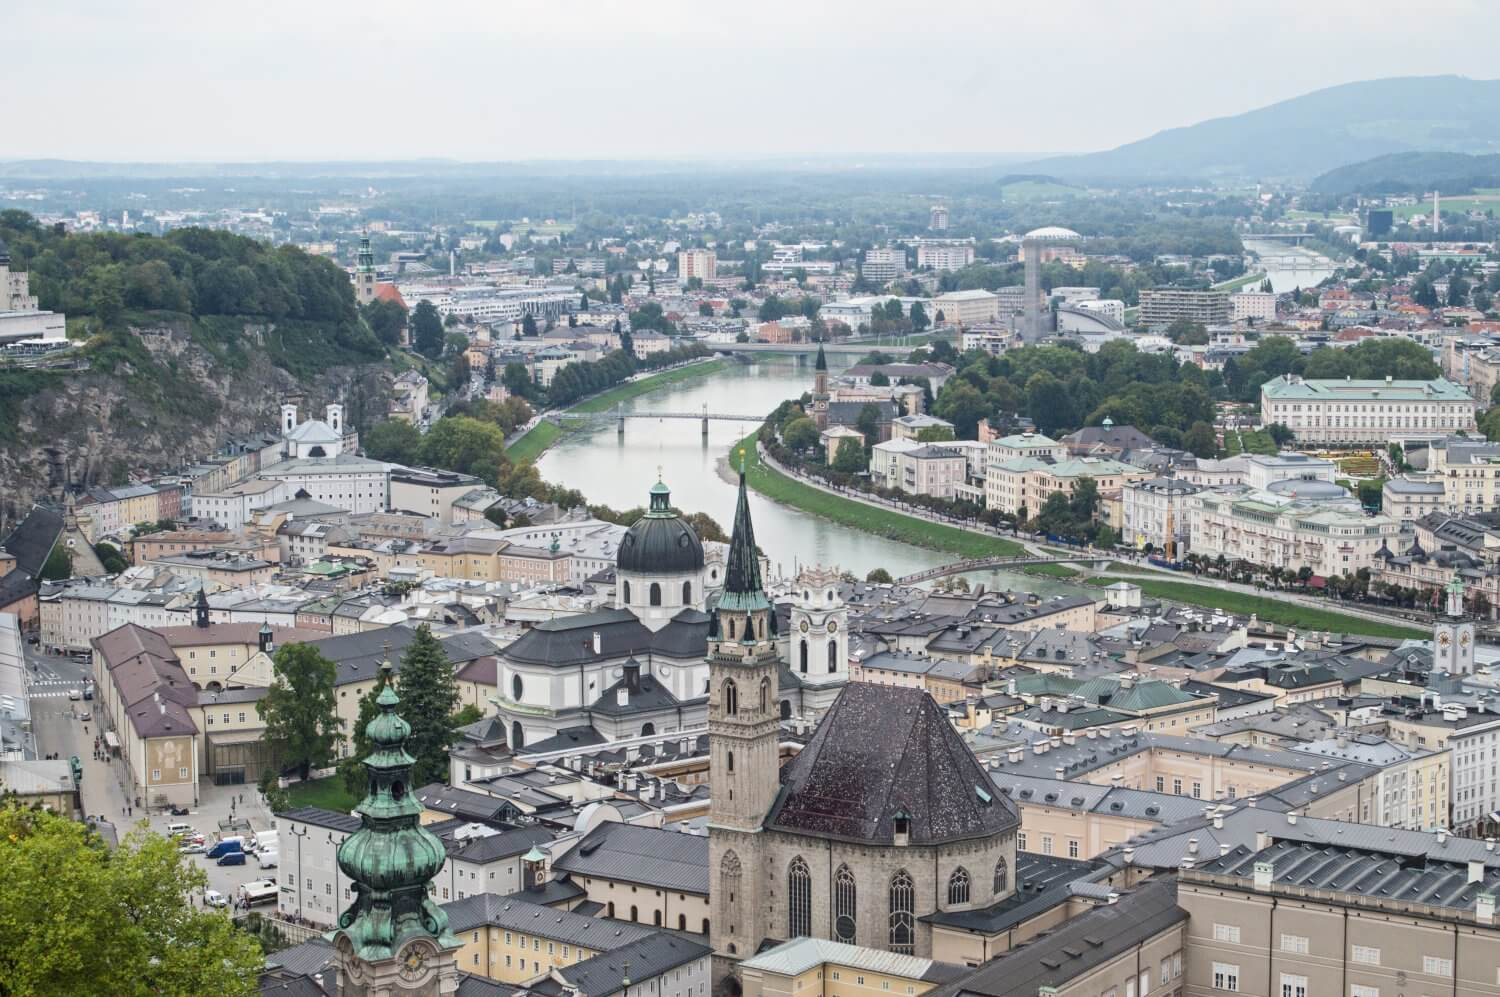 Beautiful view over Salzburg, Austria from Hohensalzburg Fortress